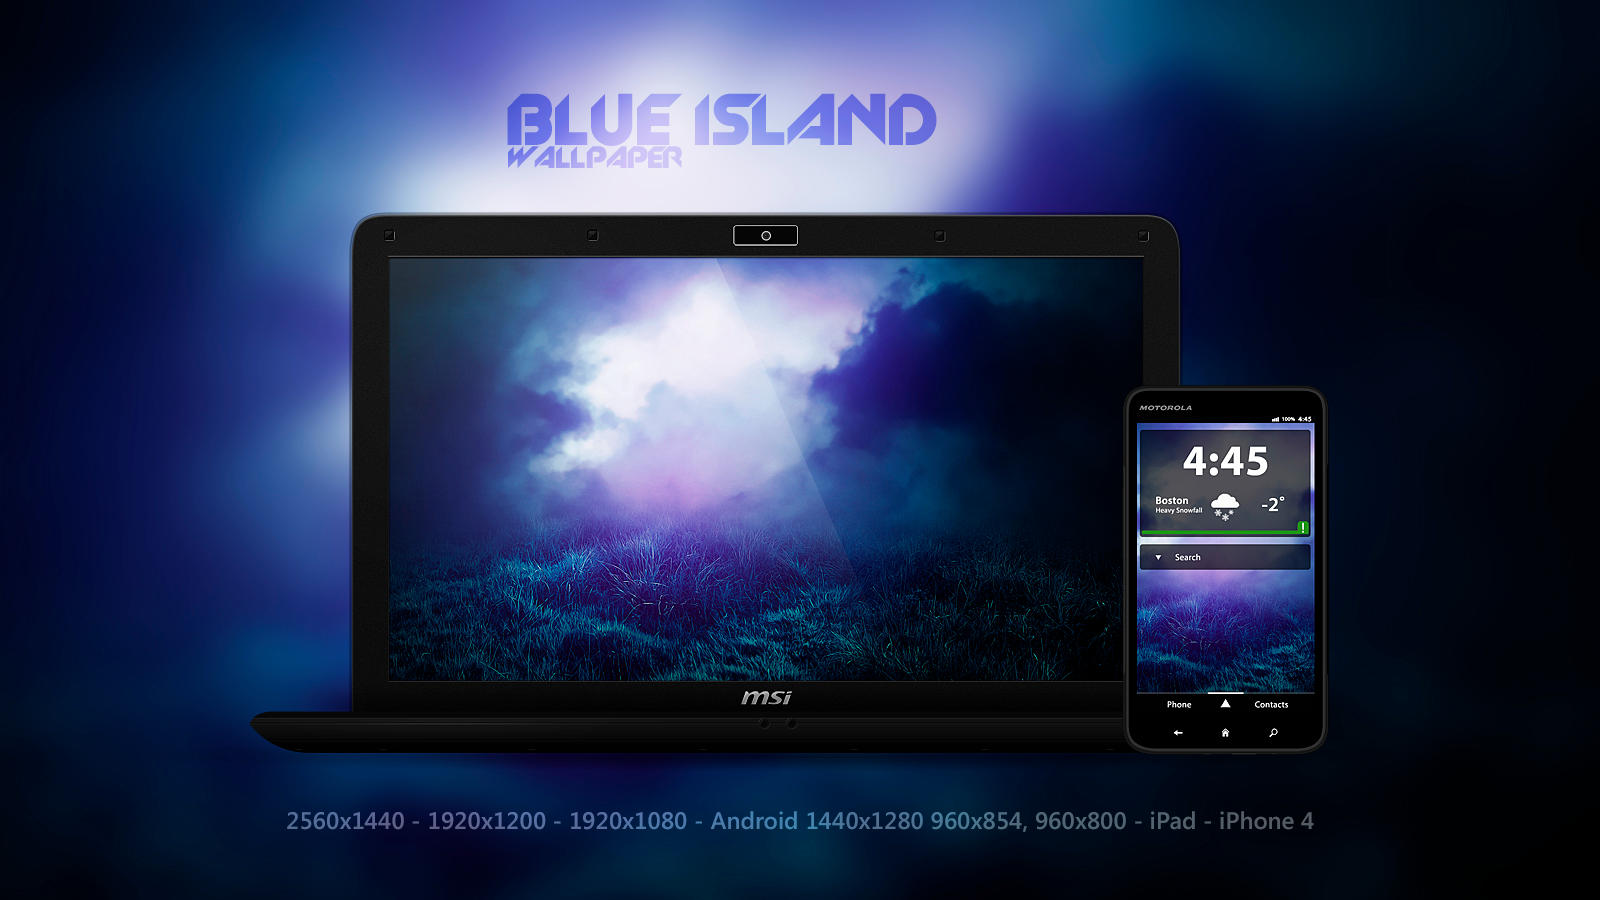 Blue Island Wallpaper by Martz90